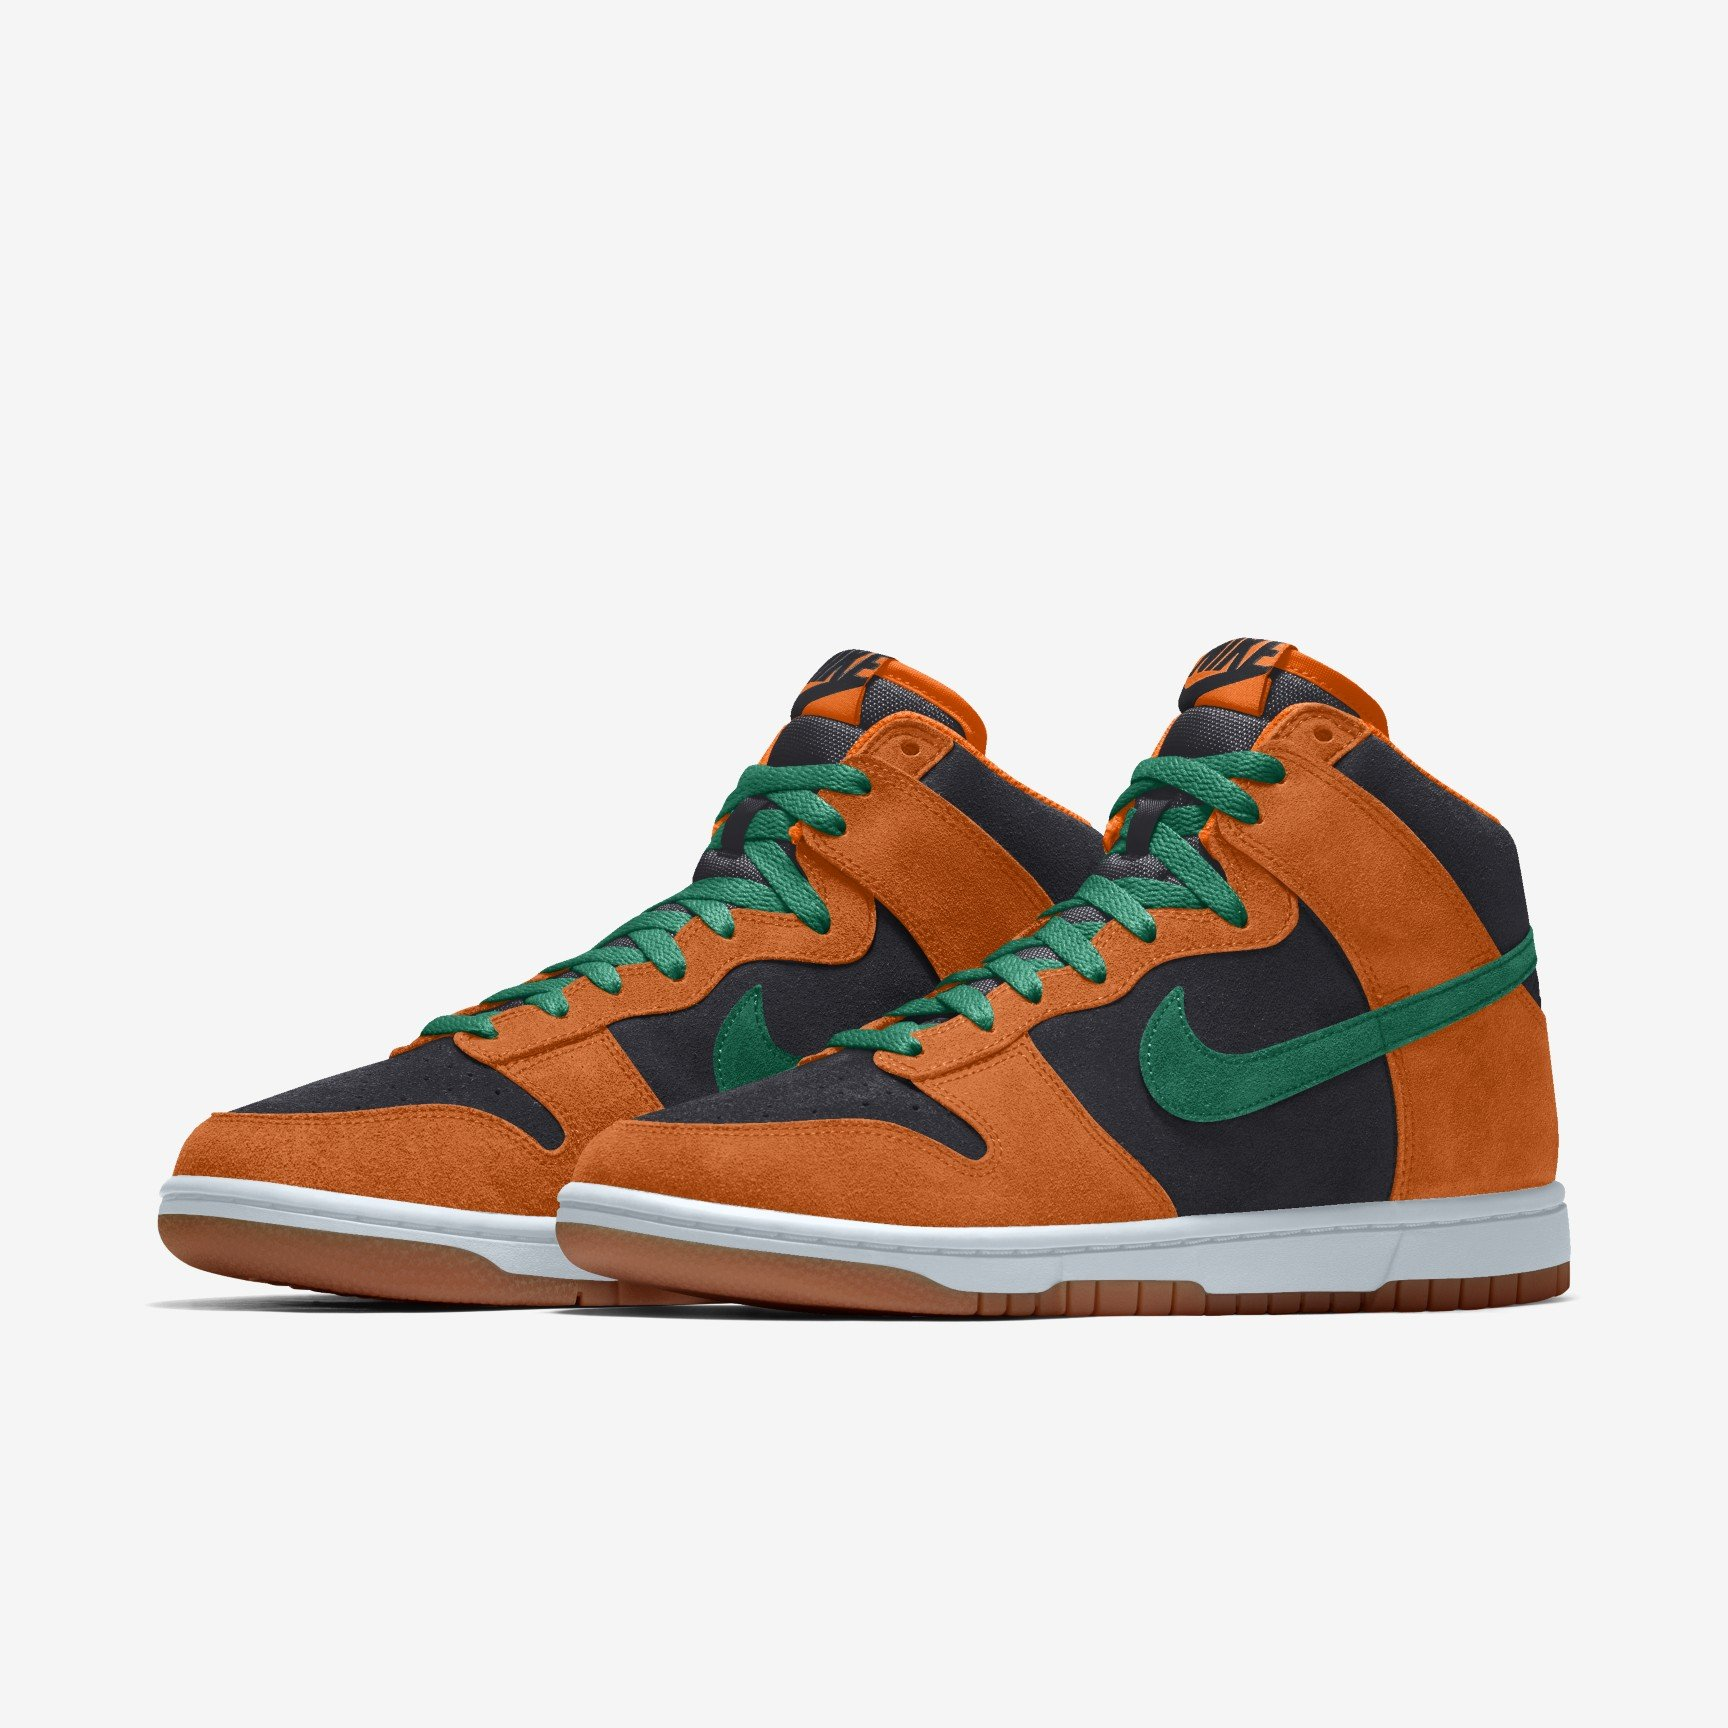 nike-dunk-high-by-you-dj7023-991-release-20210803-ceramic